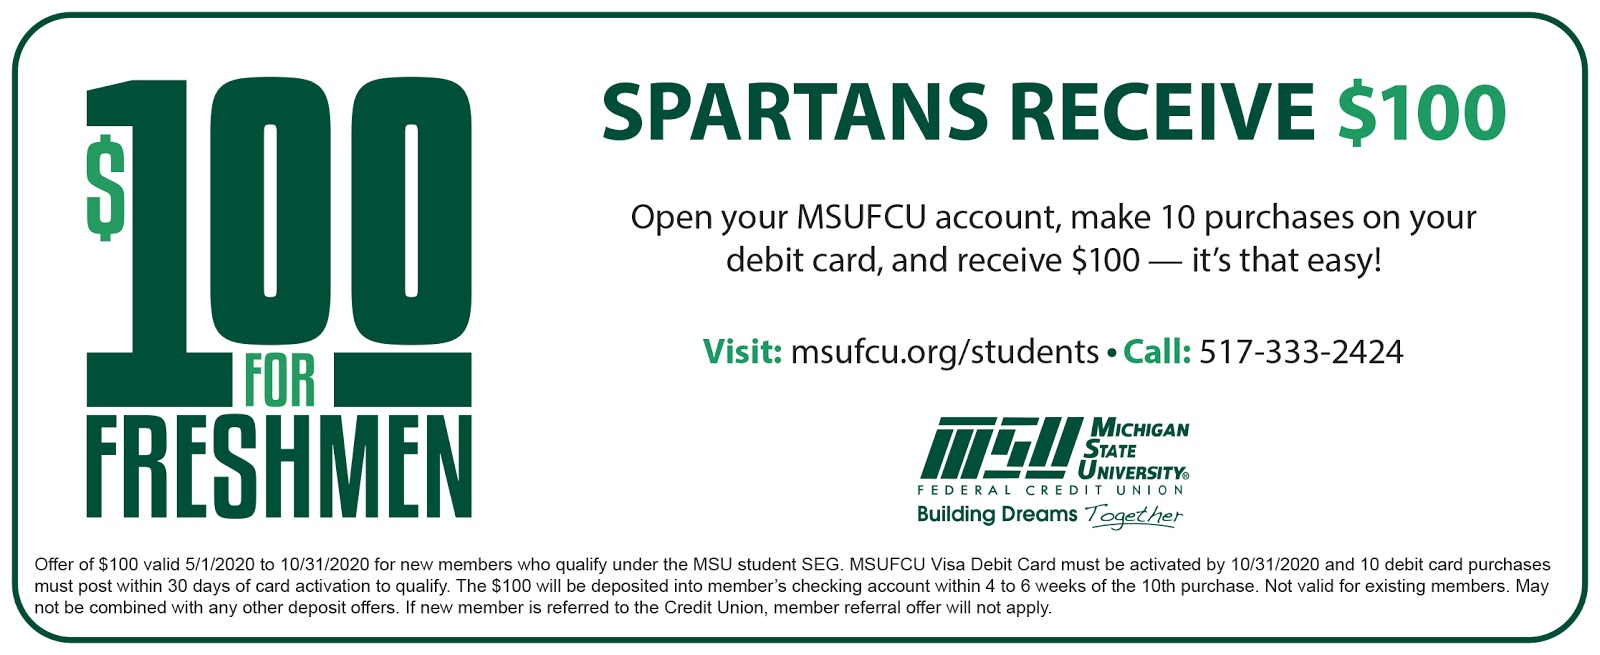 $100 for students. click for more details